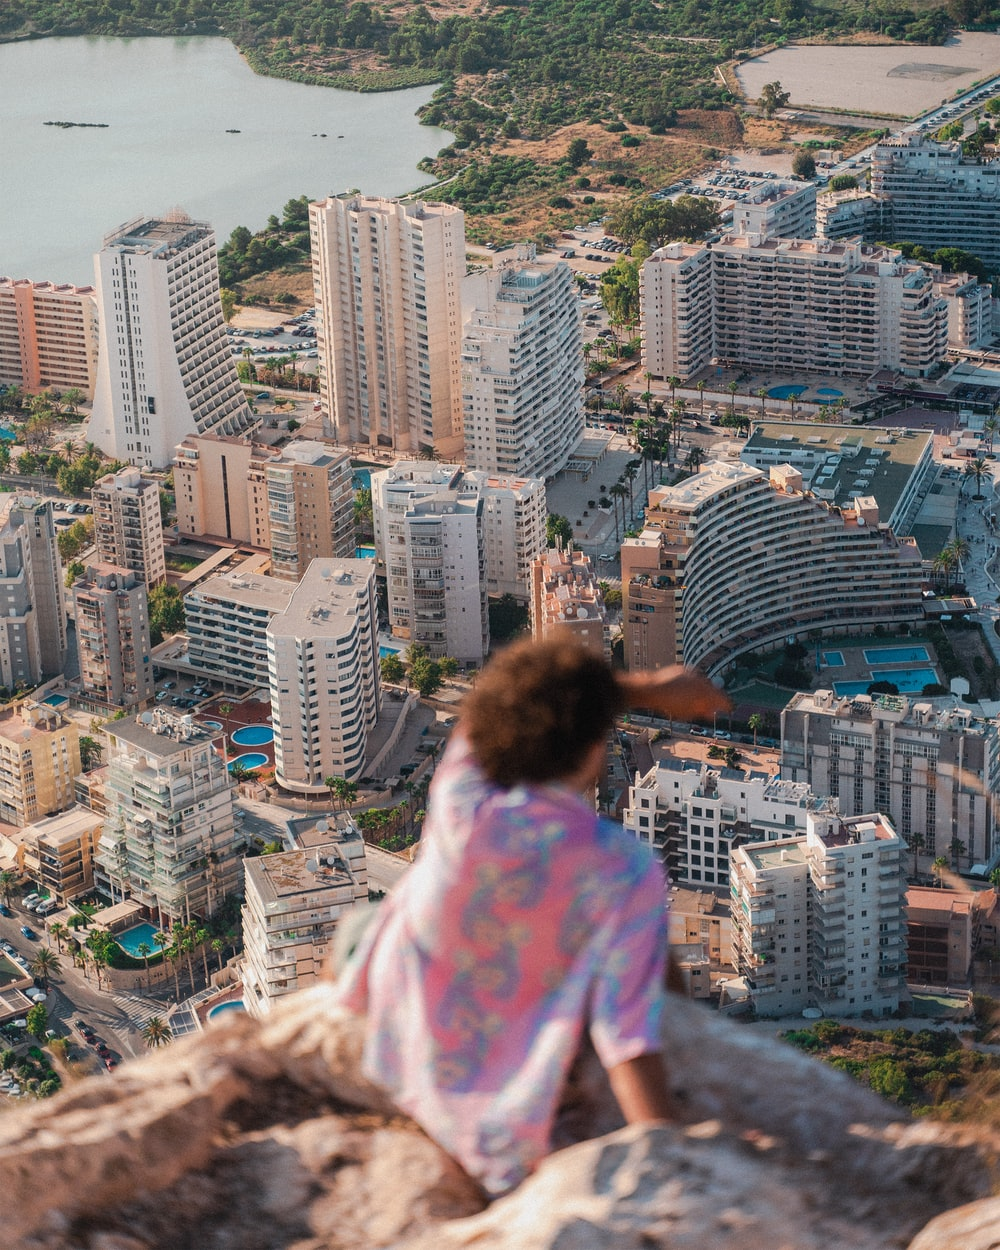 woman in pink and white floral shirt sitting on top of building looking at city buildings